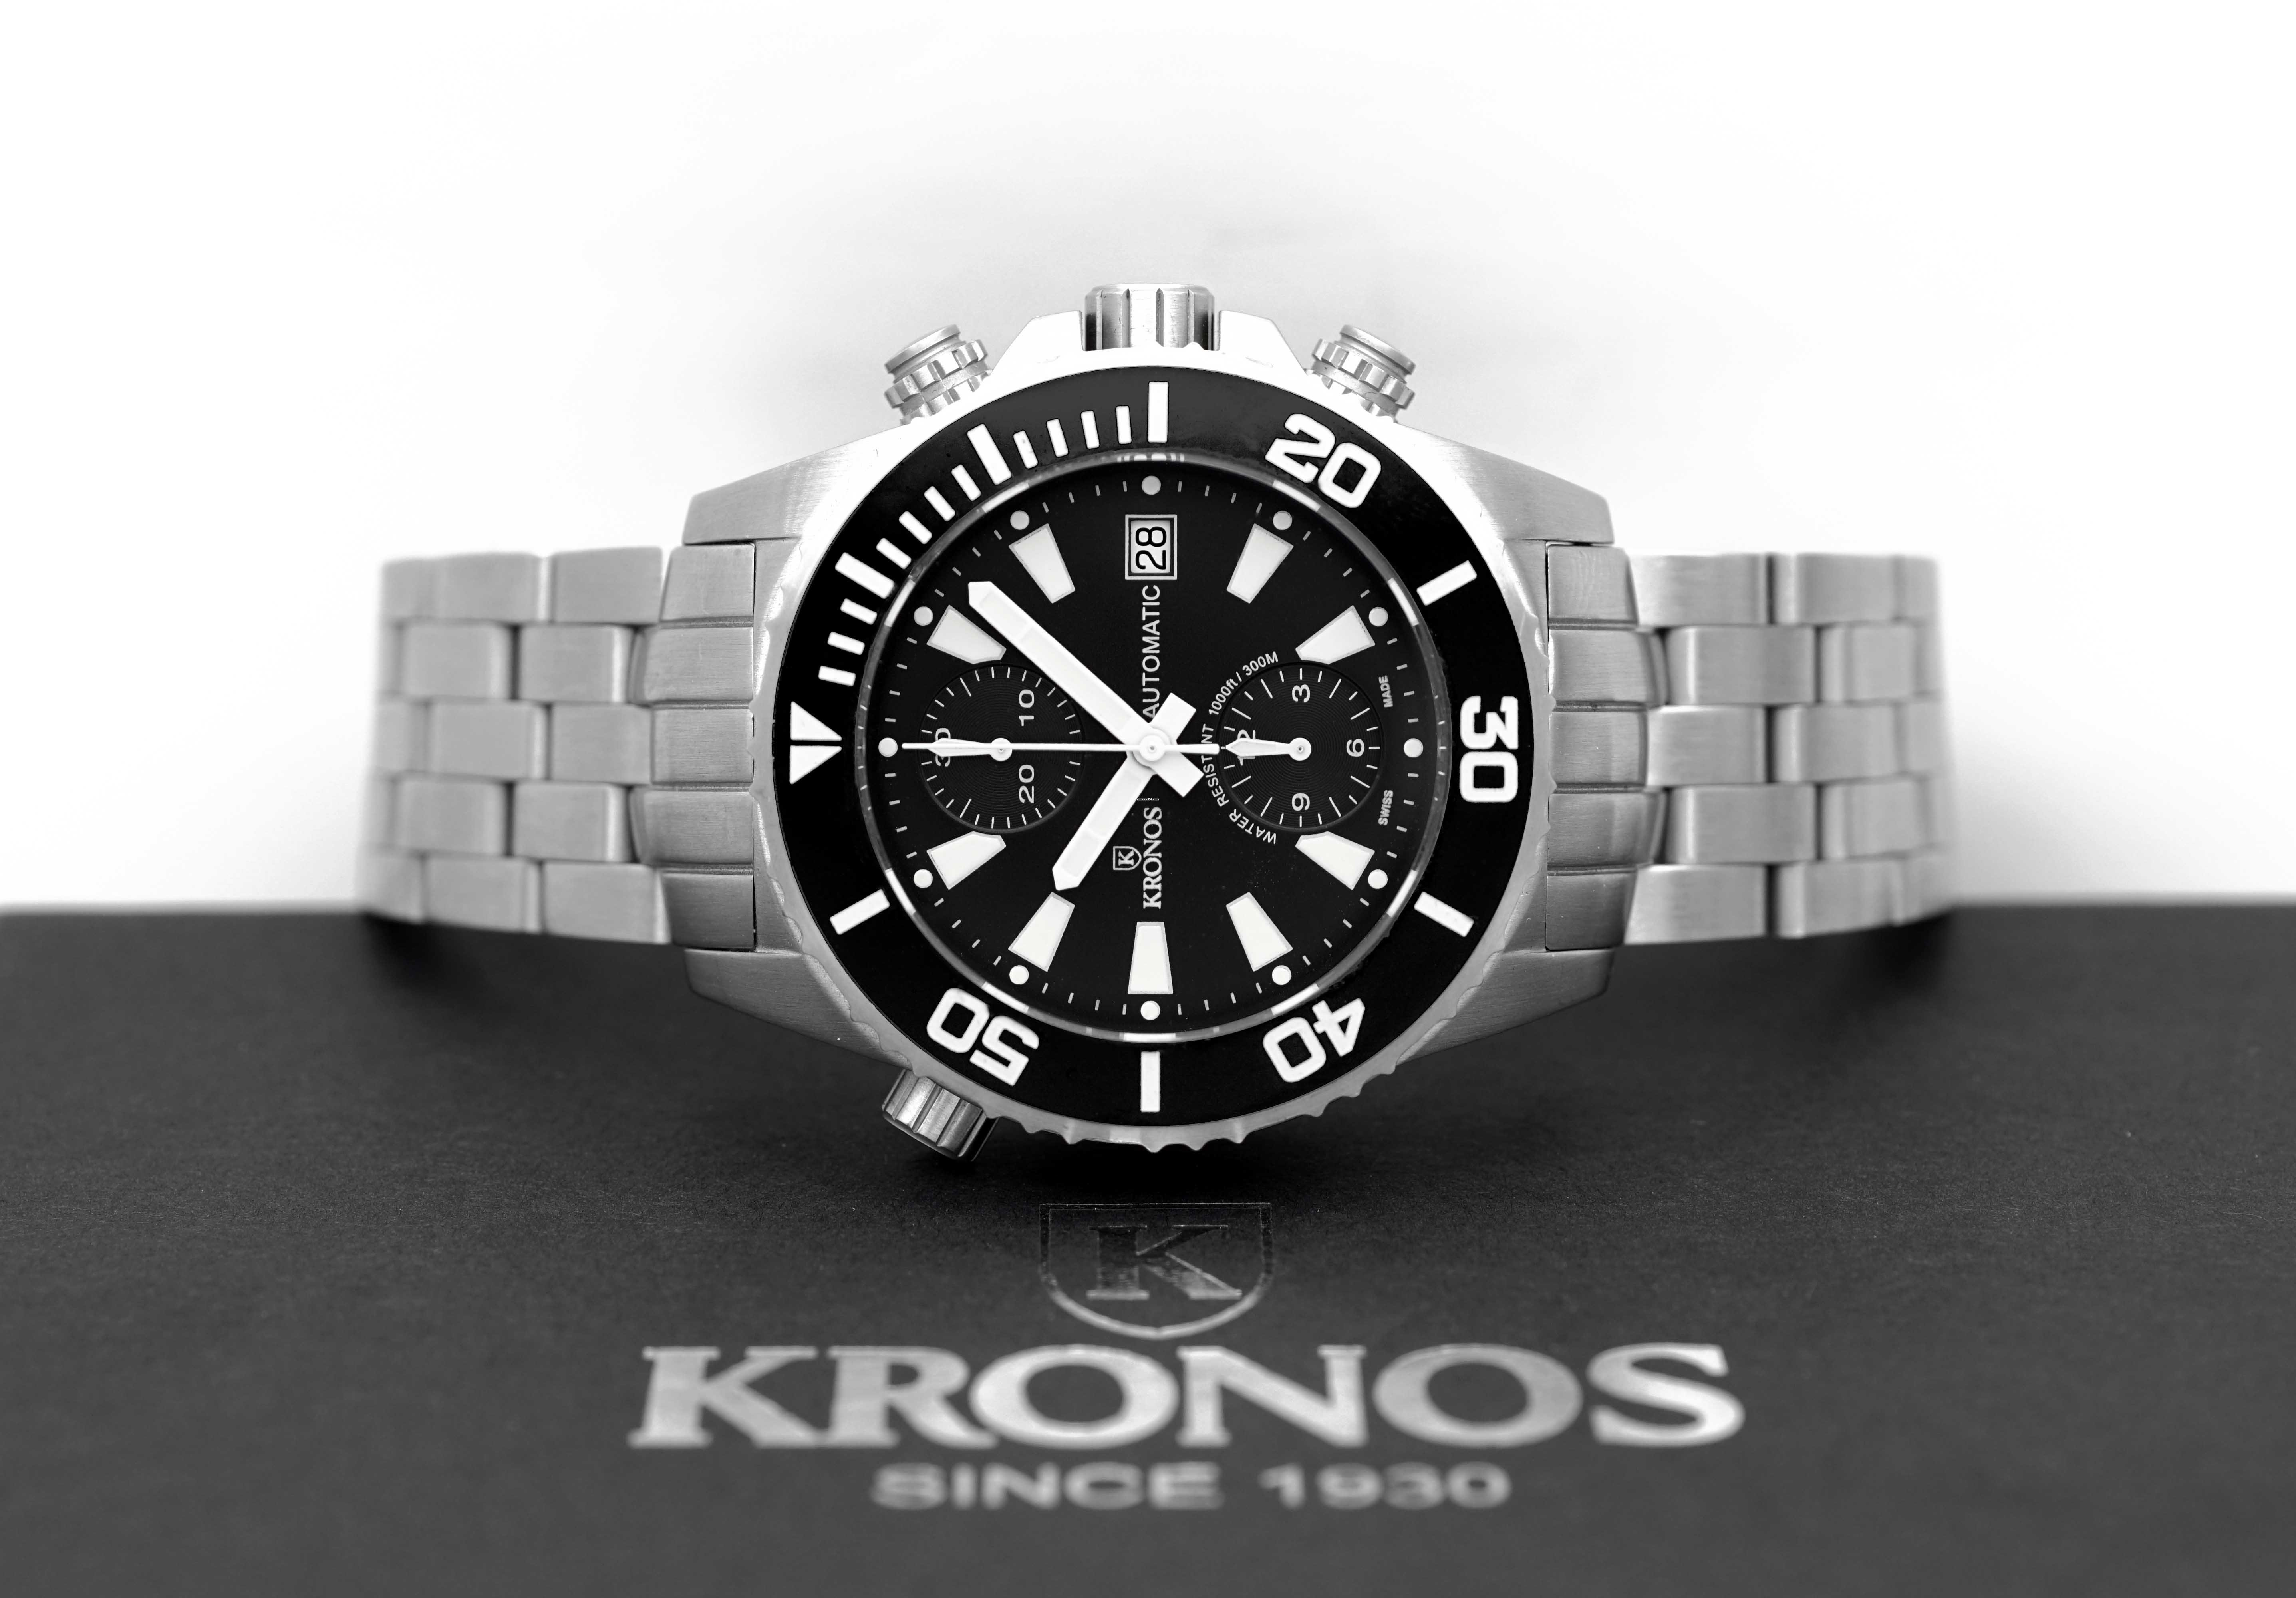 eabe89a8c KRONOS K300 AUTOMATIC CHRONOGRAPH BLACK for $864 for sale from a Trusted  Seller on Chrono24